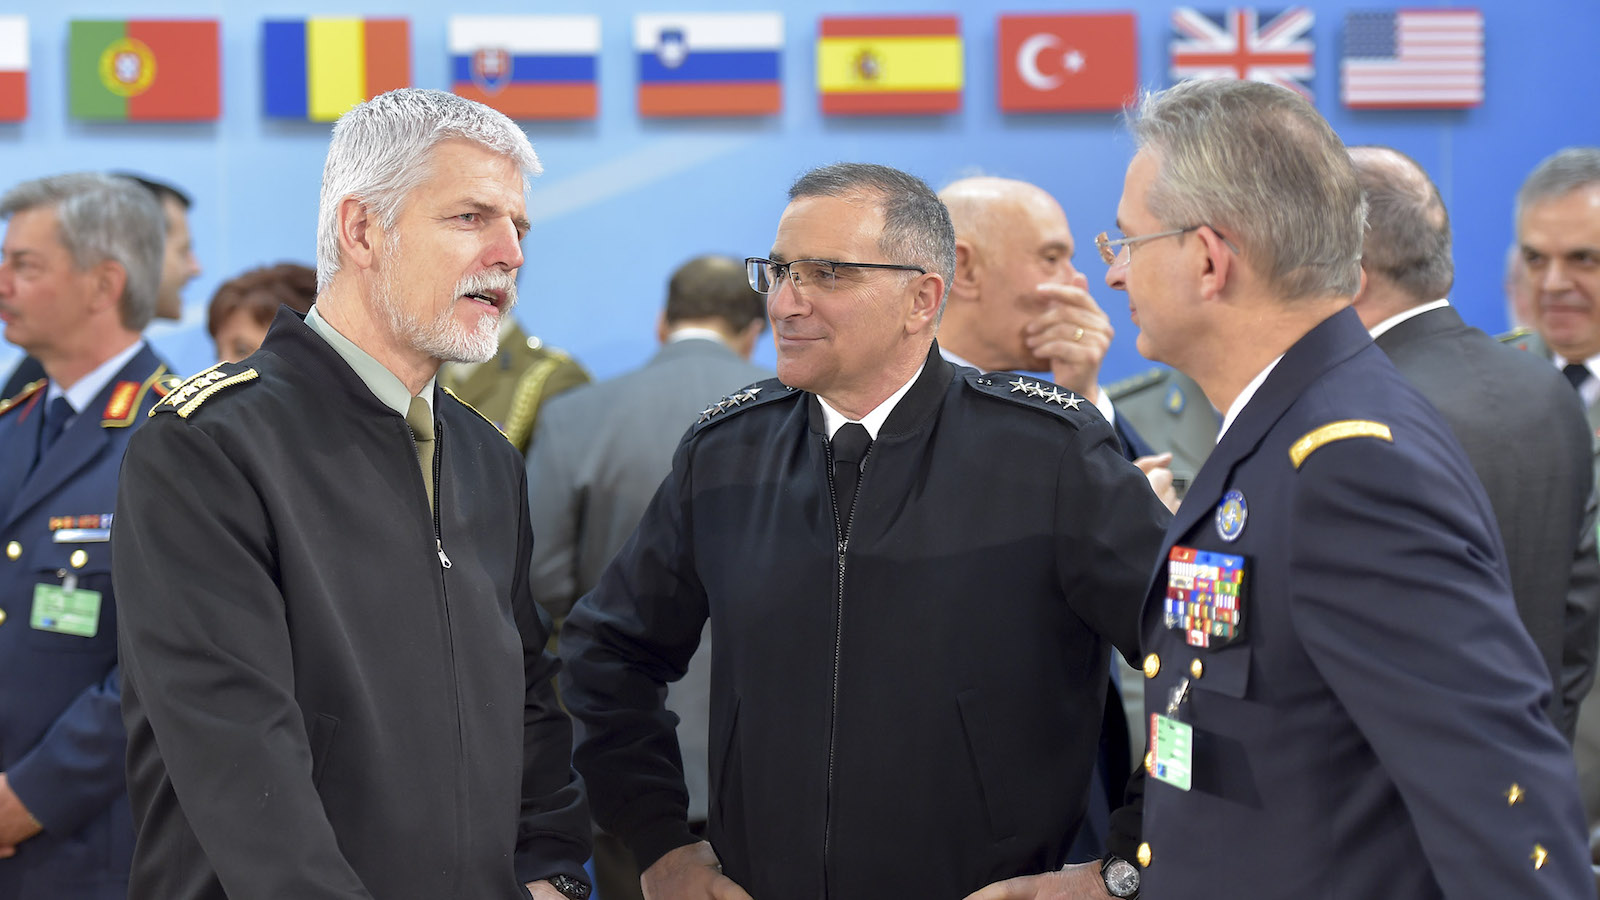 Meeting of NATO Defence Ministers in Brussels